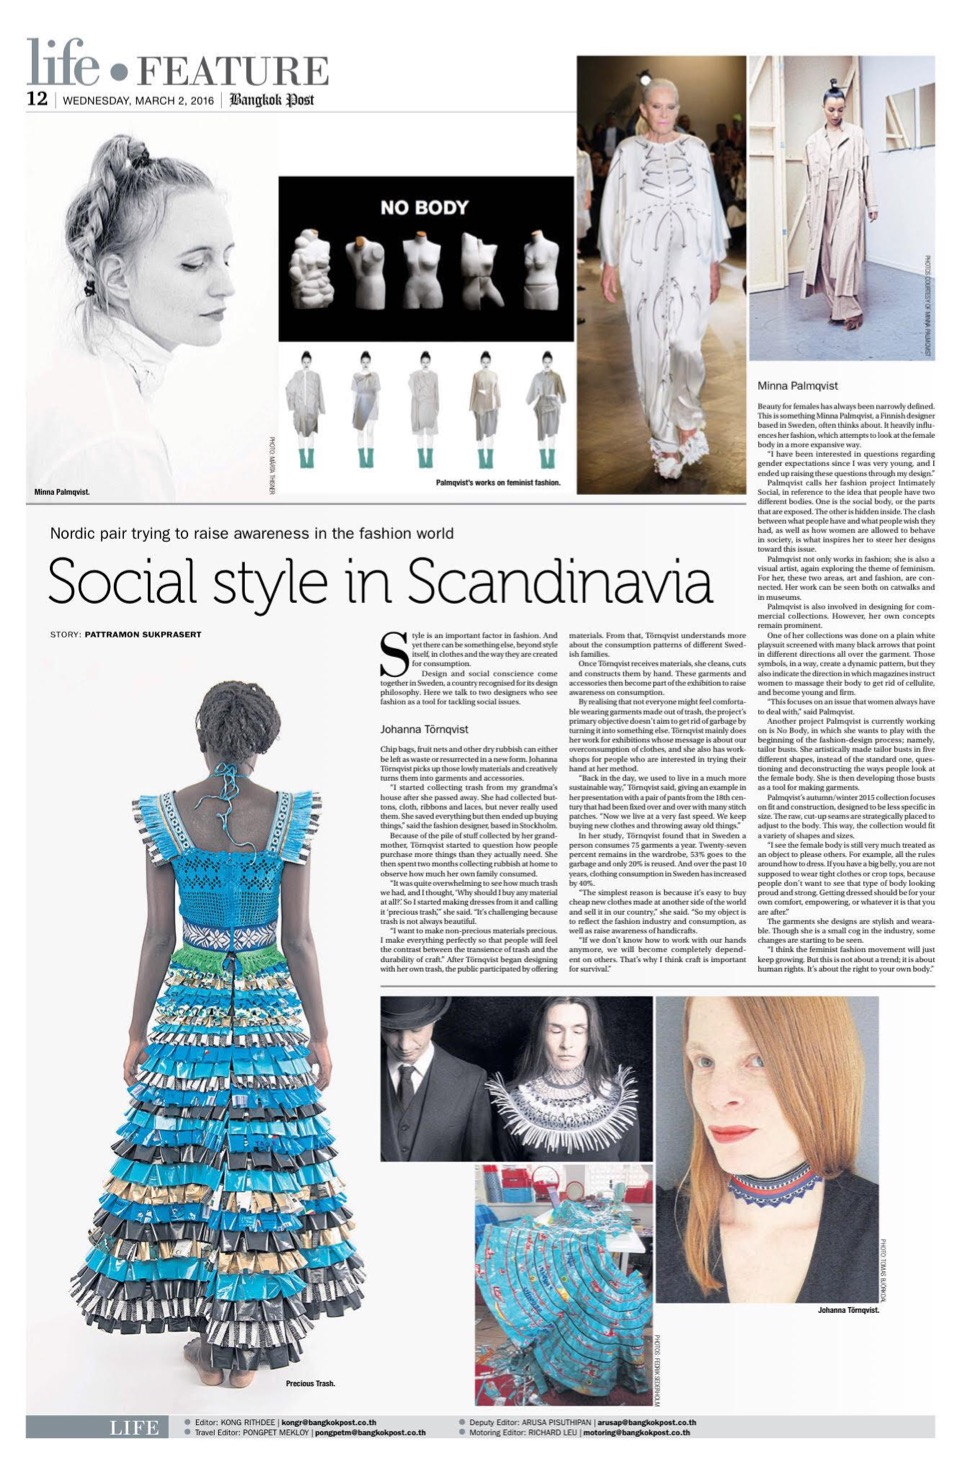 Johanna Törnqvist featured in BANGKOK POST